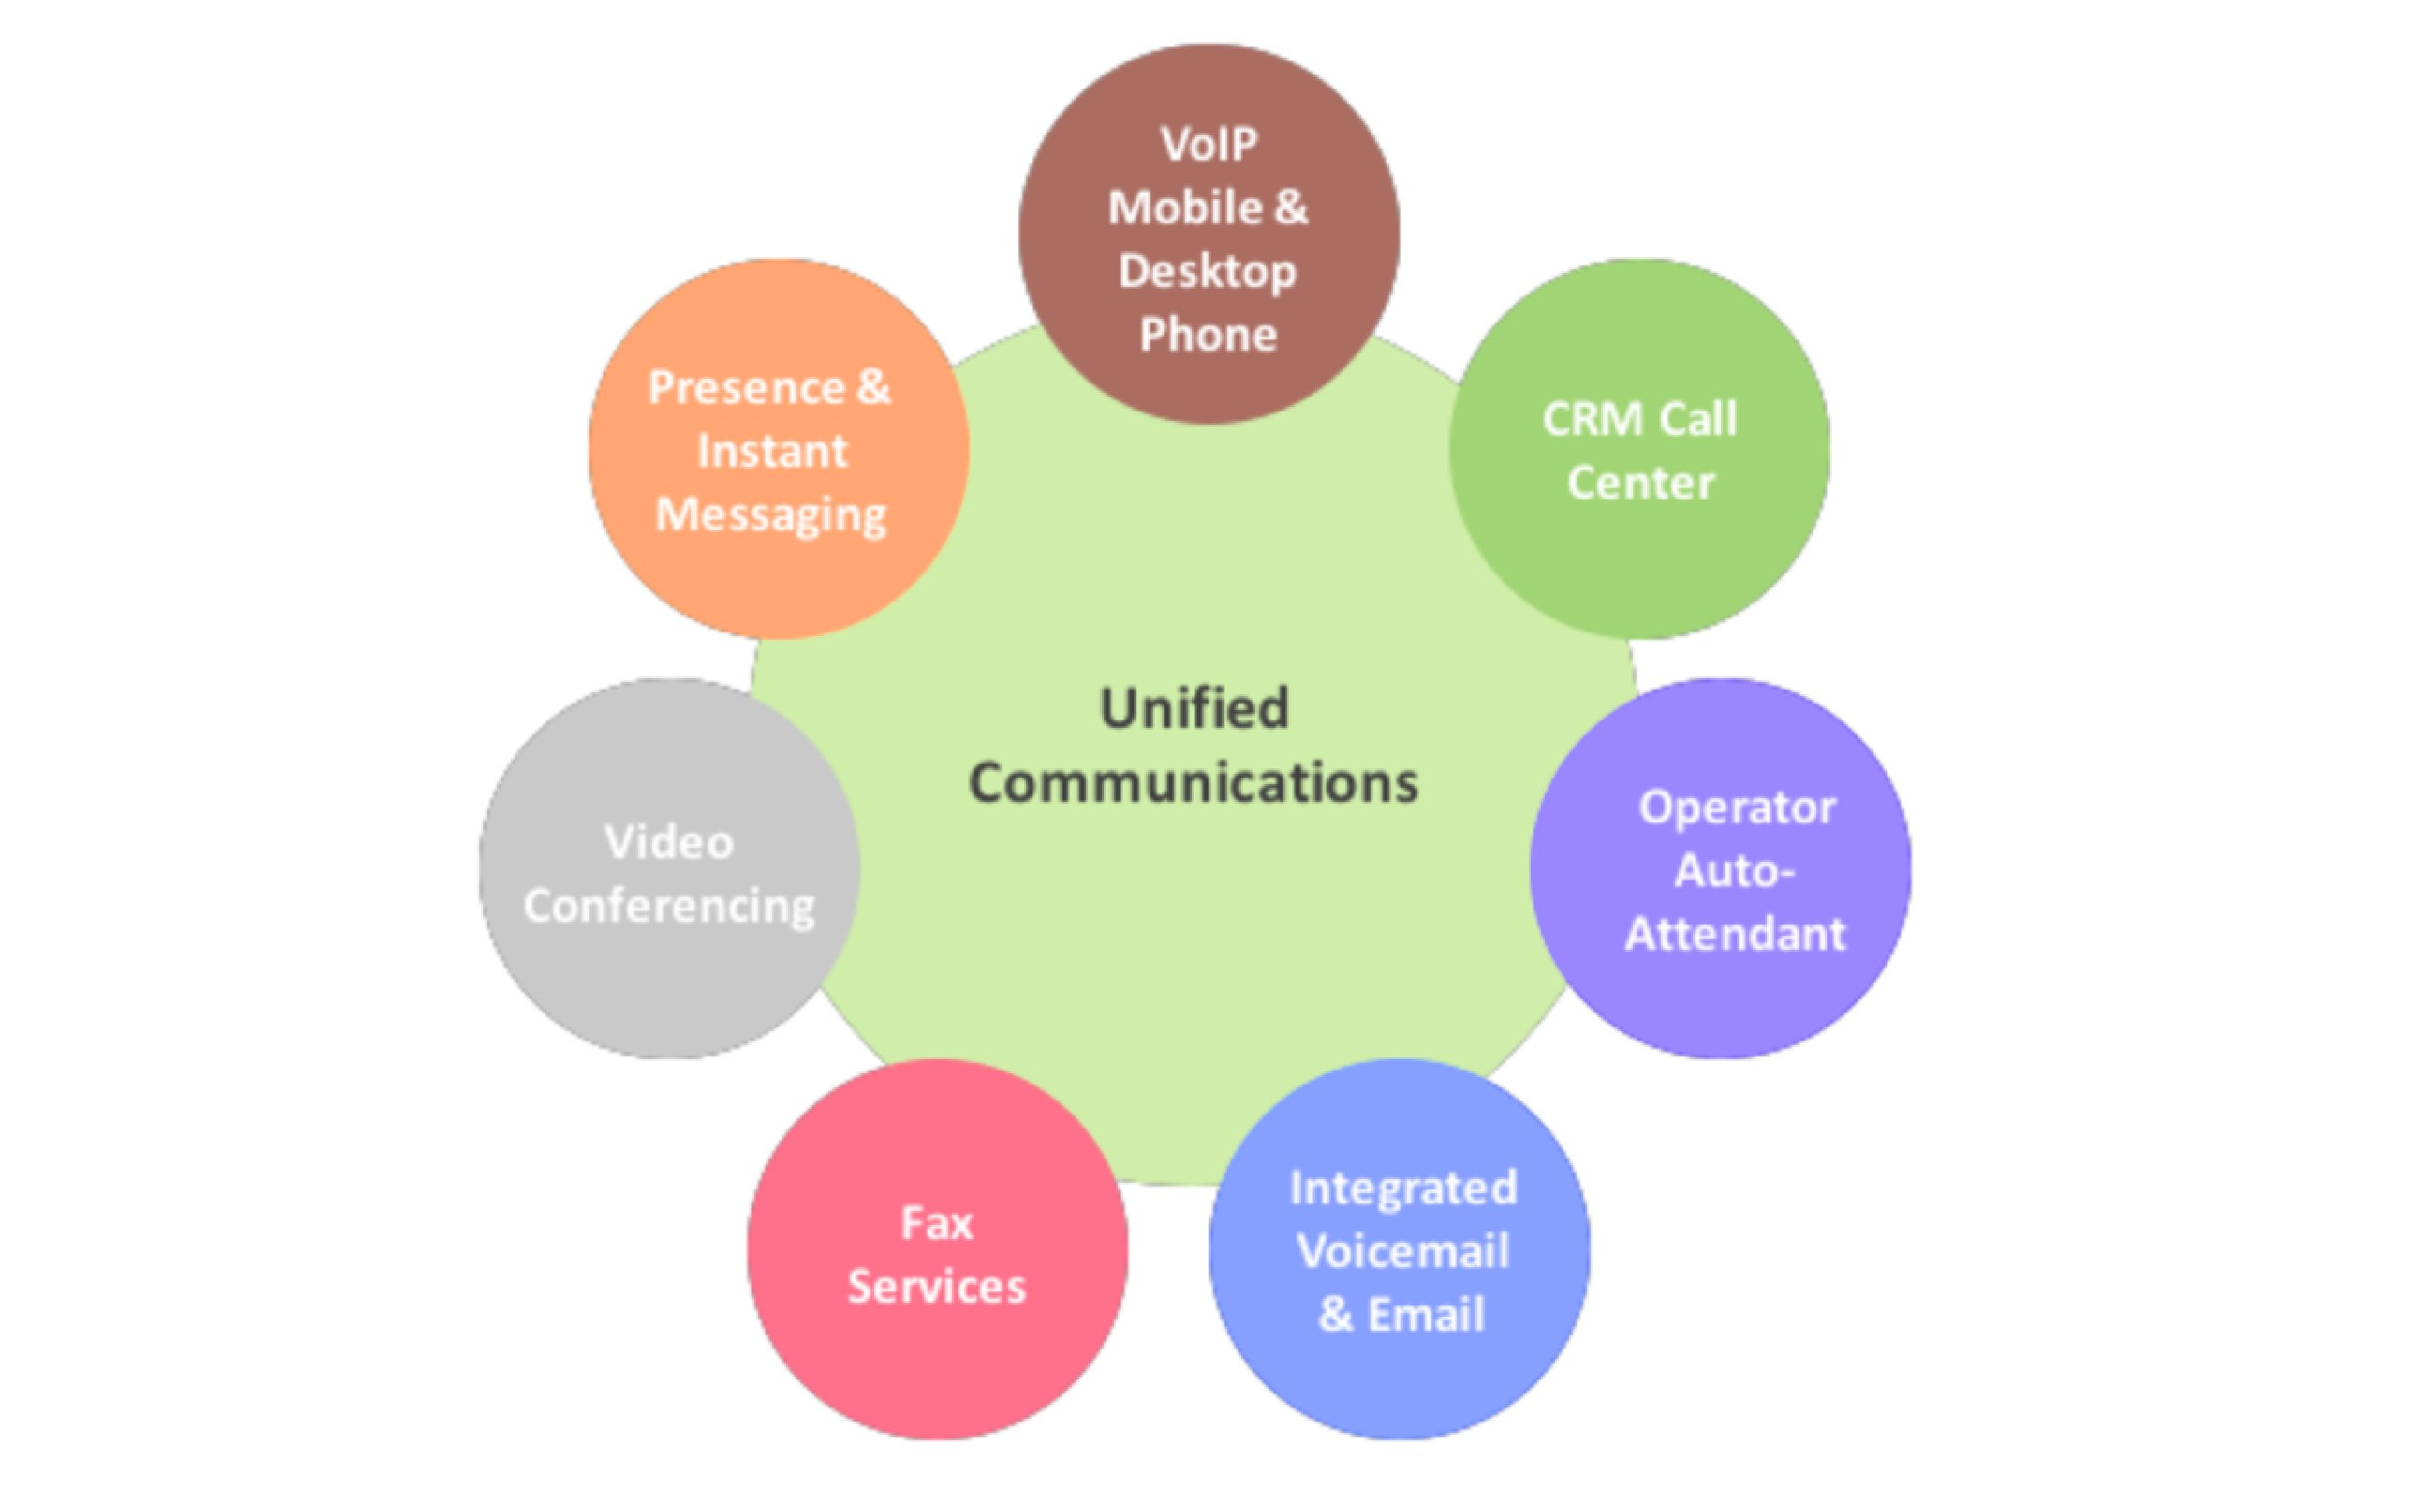 Unified Communications: Adding SMS to the Asterisk Toolkit